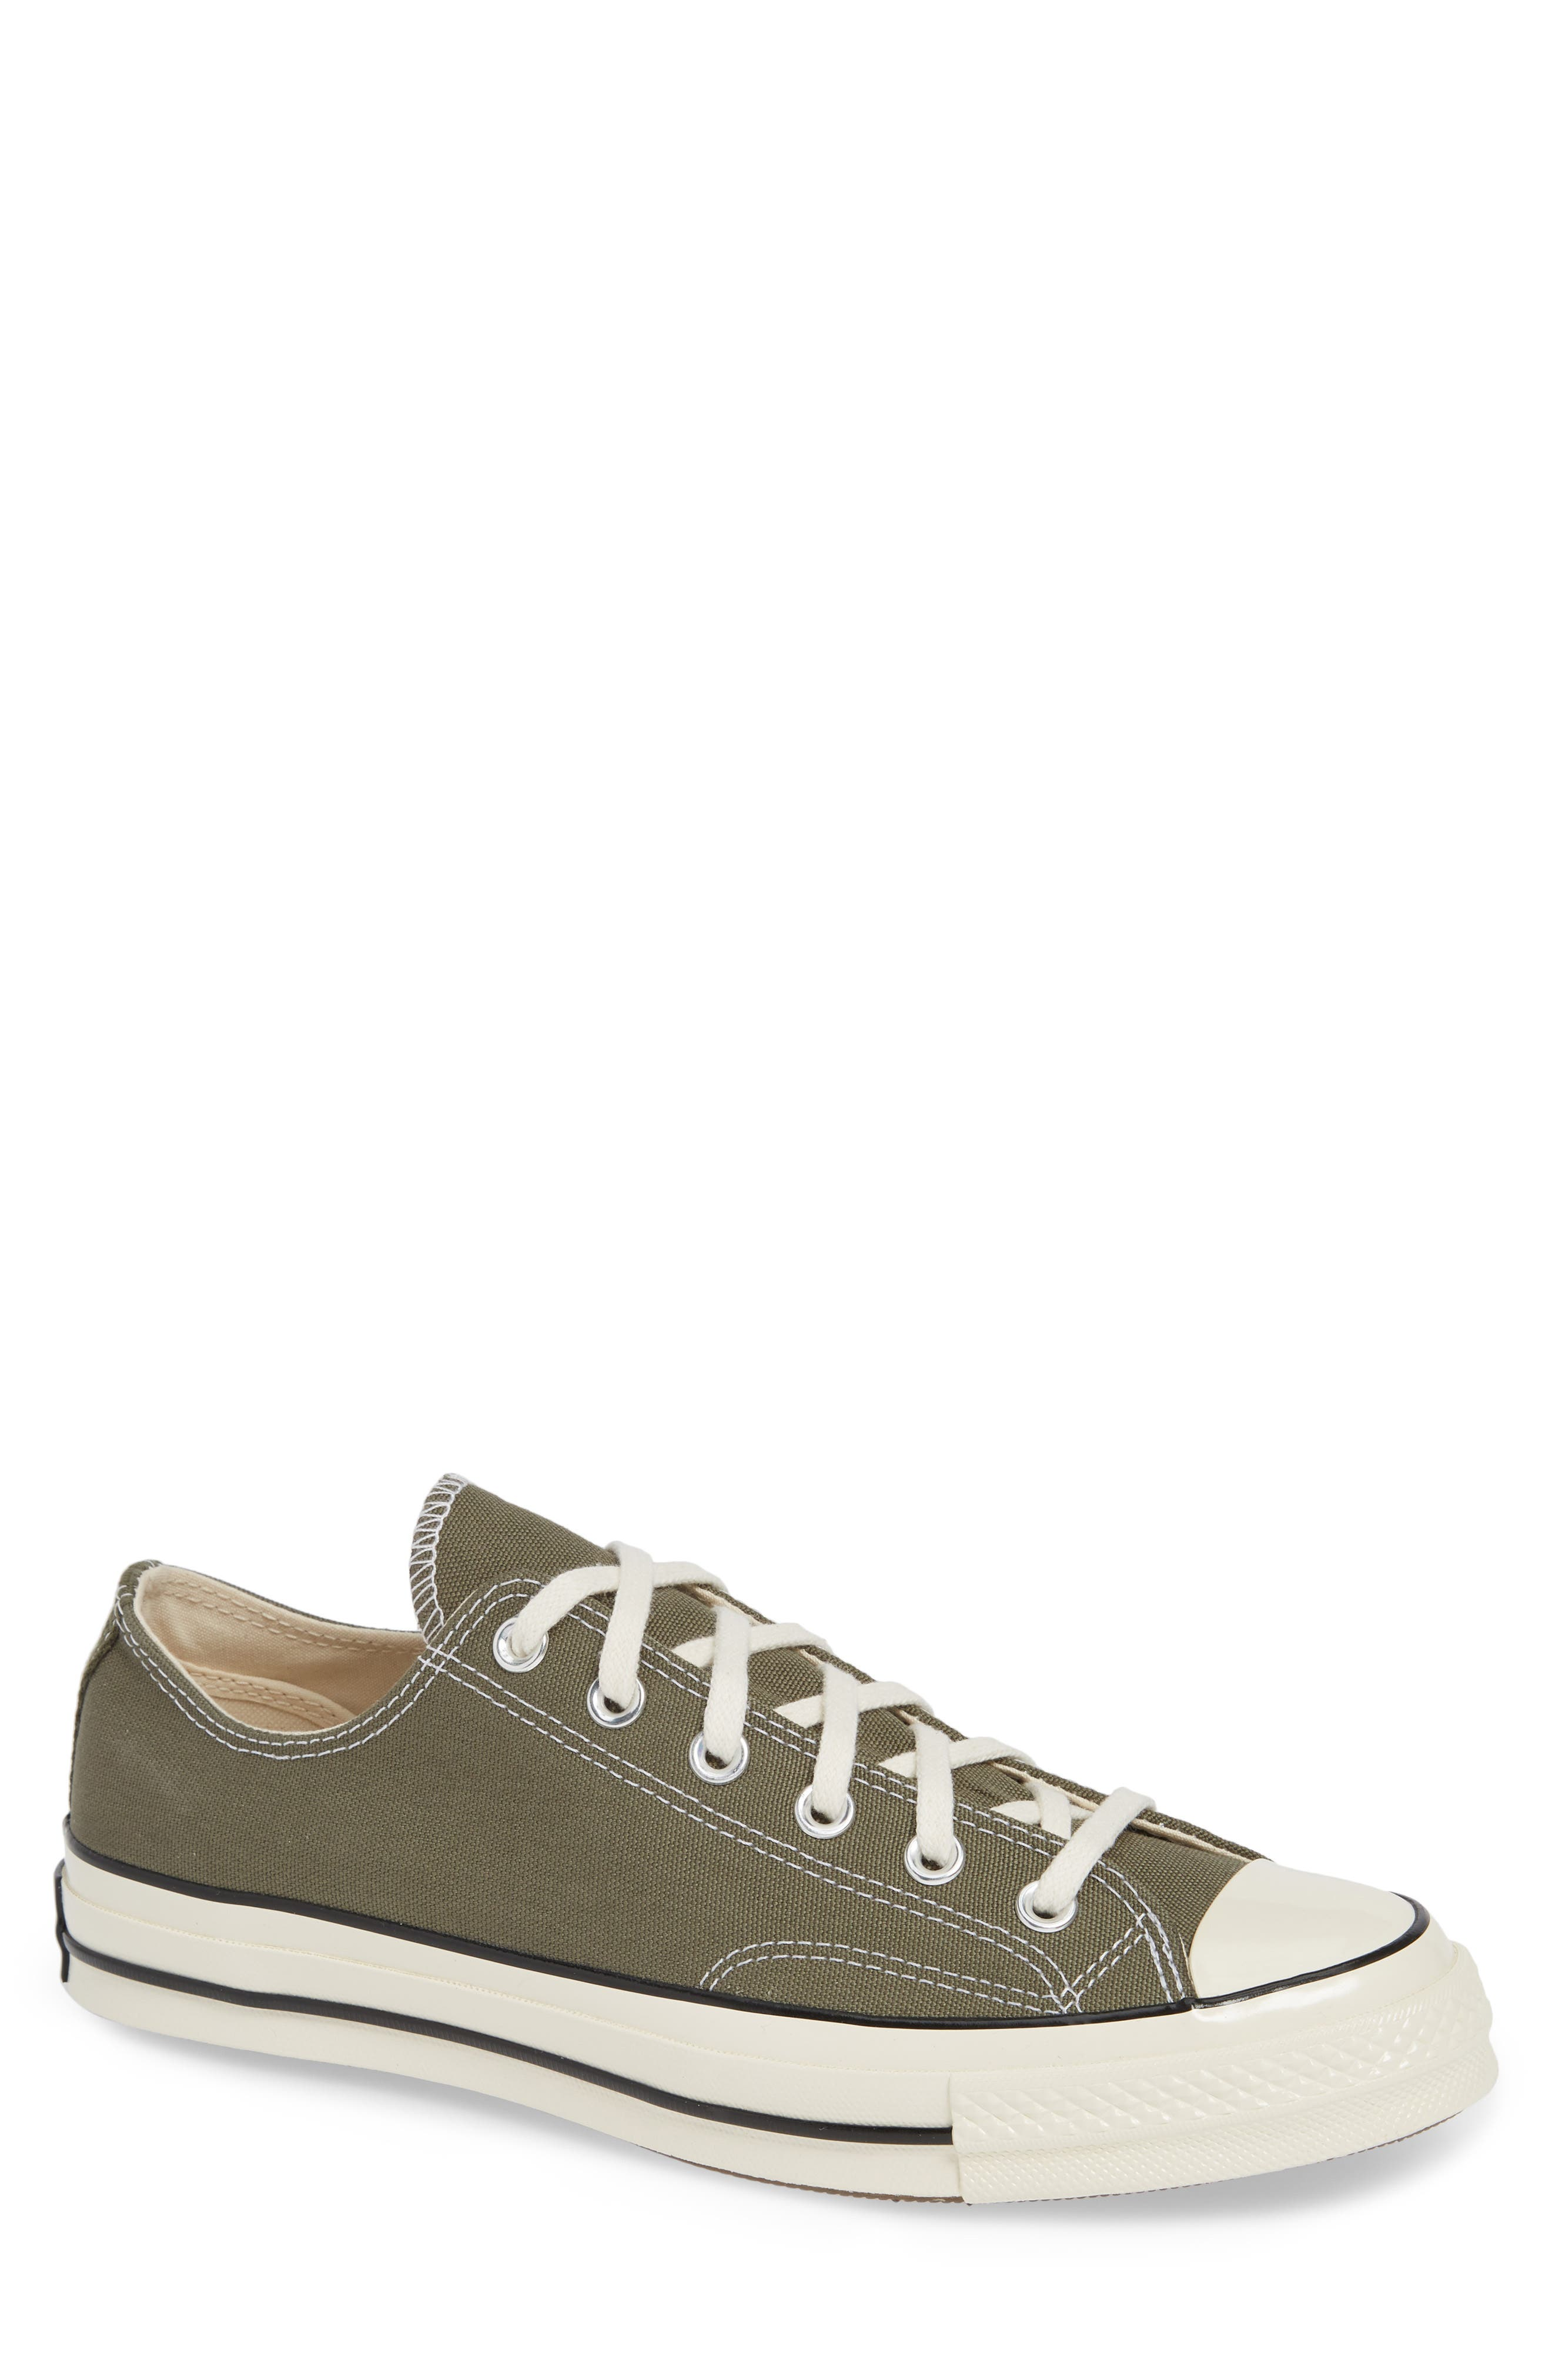 Chuck Taylor<sup>®</sup> All Star<sup>®</sup> '70 Low Sneaker,                             Main thumbnail 1, color,                             FIELD SURPLUS/ BLACK/ EGRET